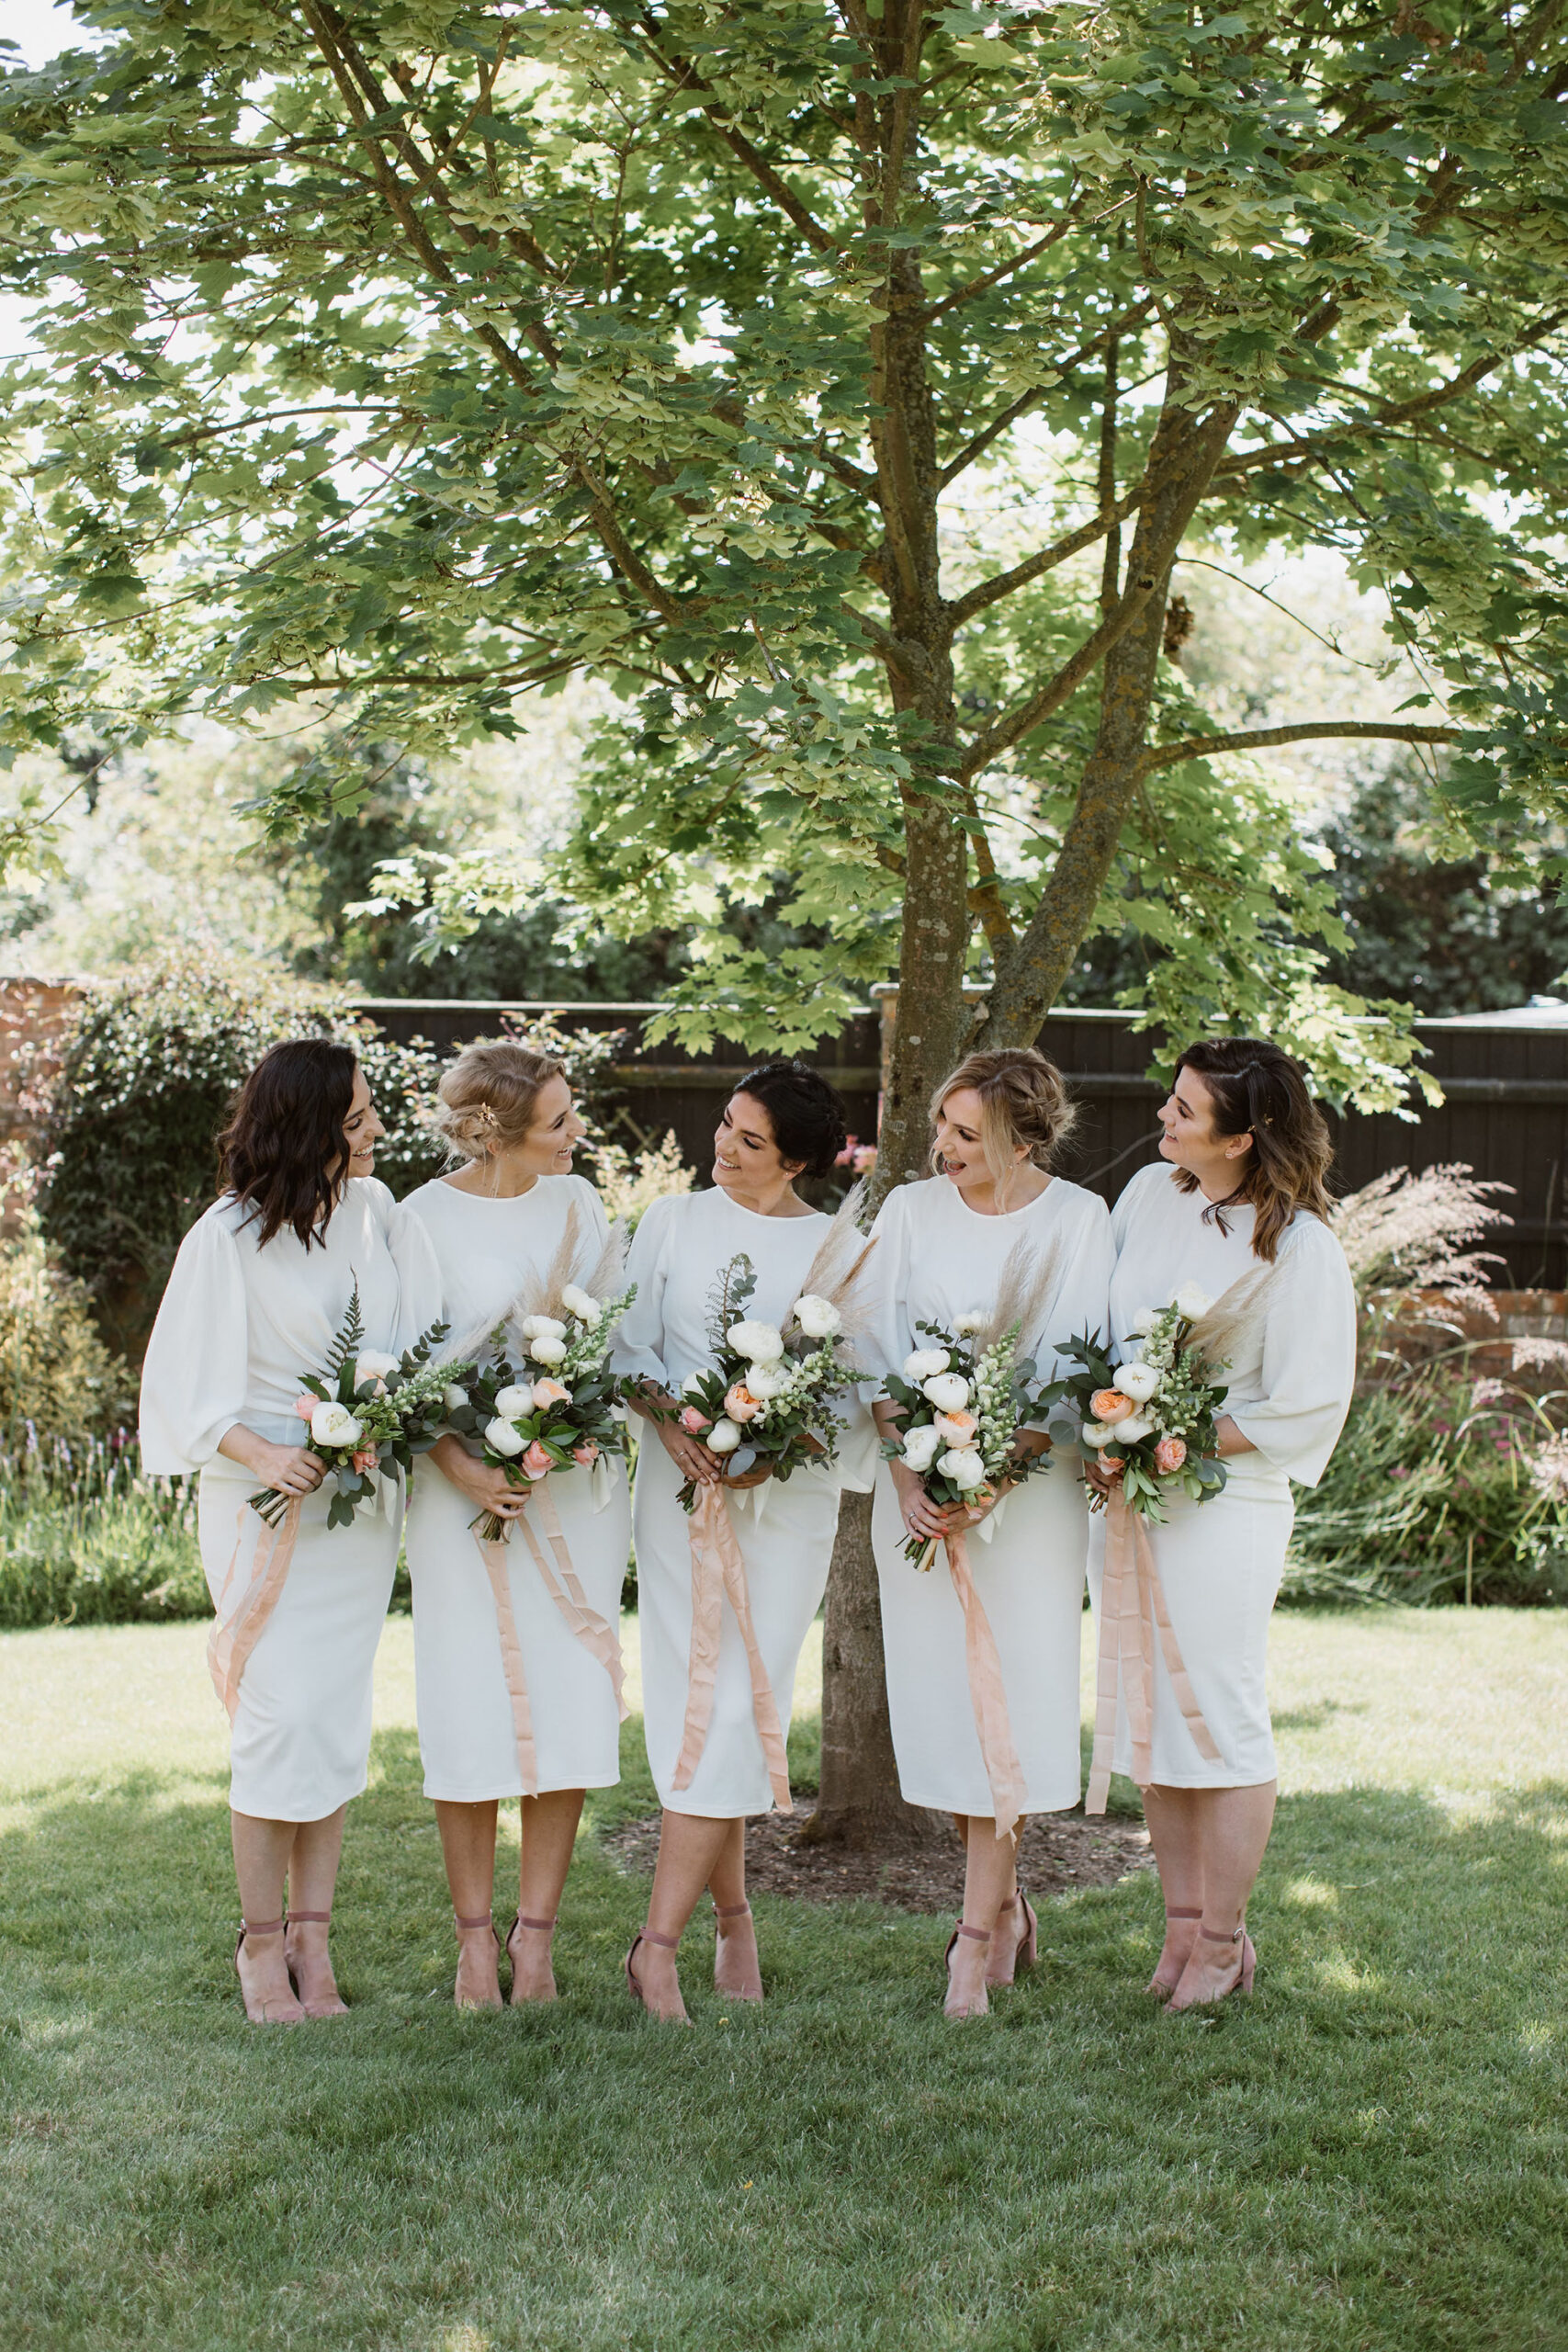 5 bridesmaids with simple white dresses and matching bouquets of white and peach flowers. They're standing in a garden in a line, talking and laughing. Wedding image by Luke Hayden Photography